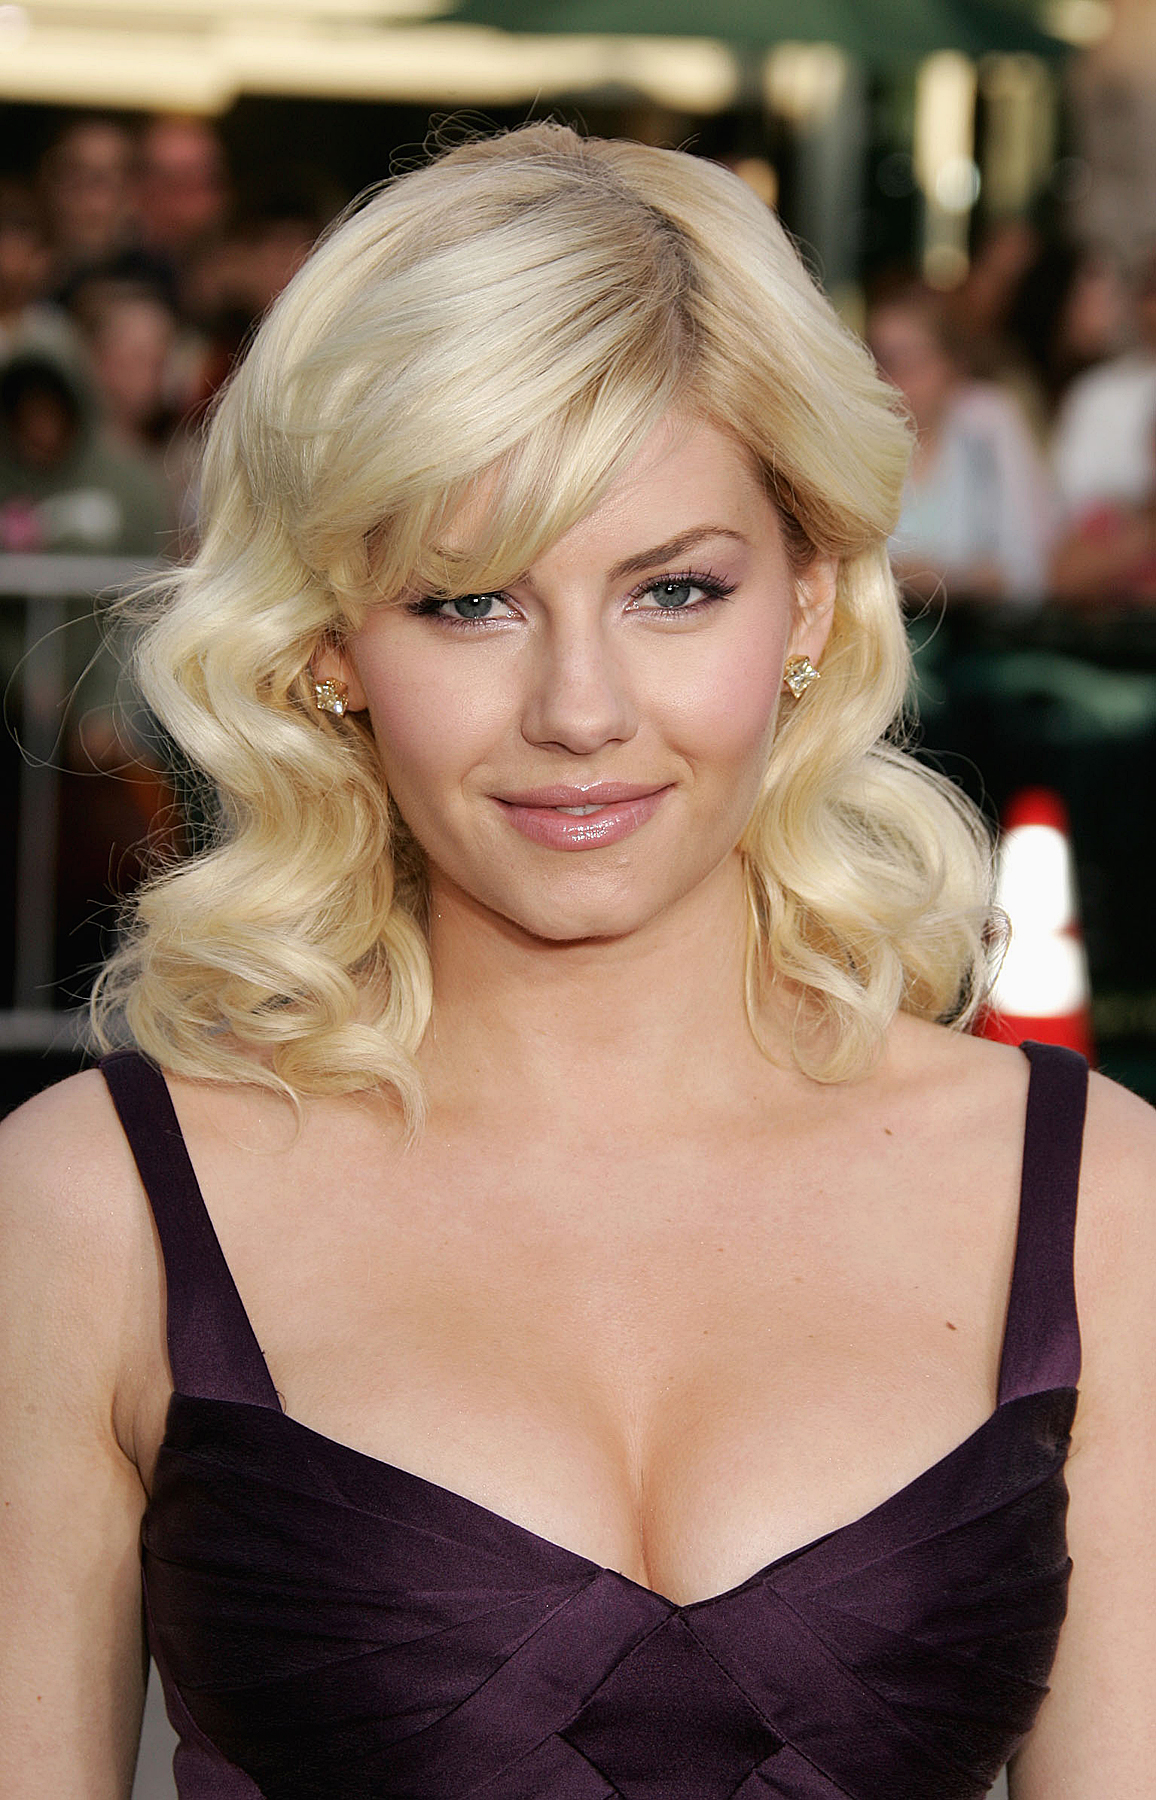 Elisha Cuthbert Photo 381 Of 651 Pics Wallpaper Photo